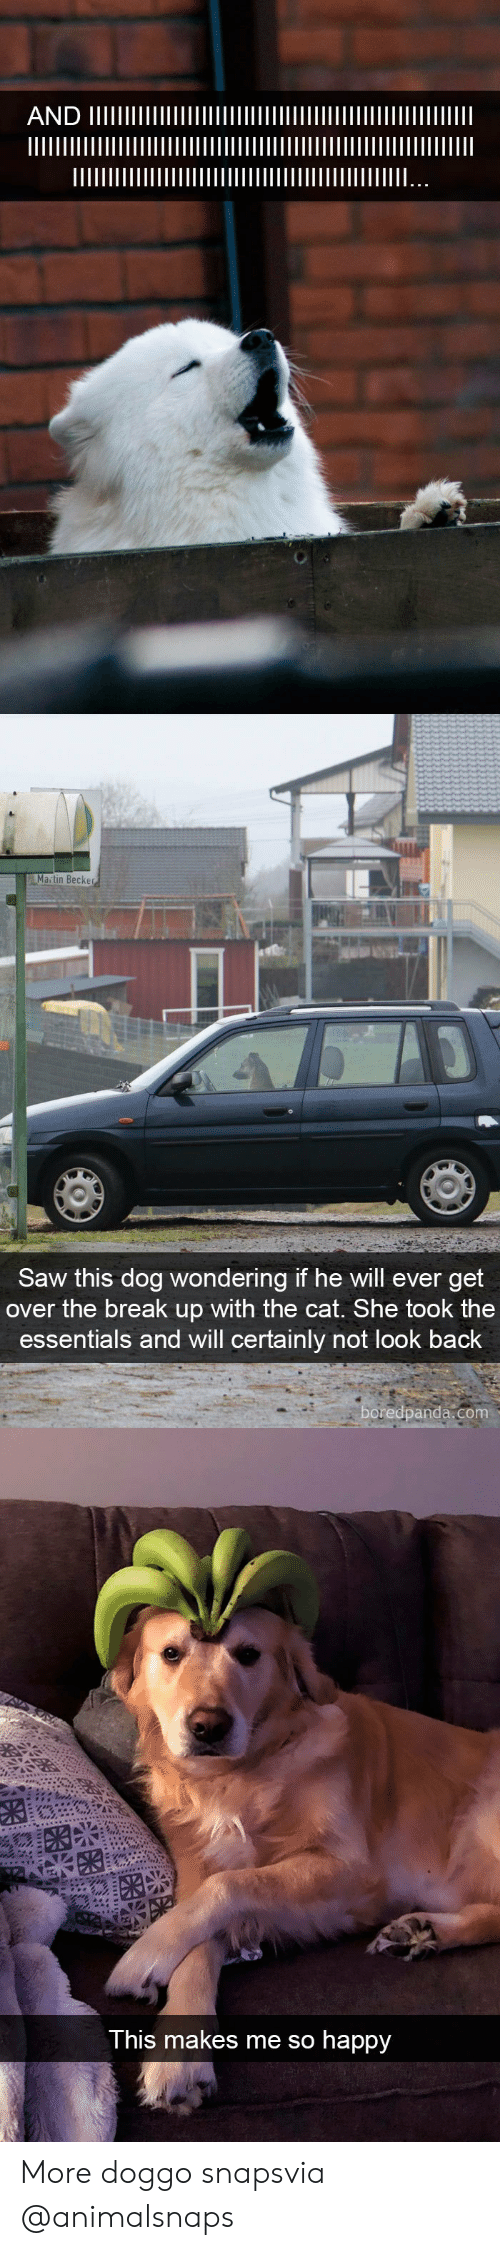 Certainly Not: Matin Becker  Saw this dog wondering if he will ever get  over the break up with the cat. She took the  essentials and will certainly not look back  oredpanda.com   This makes me so happy More doggo snapsvia @animalsnaps